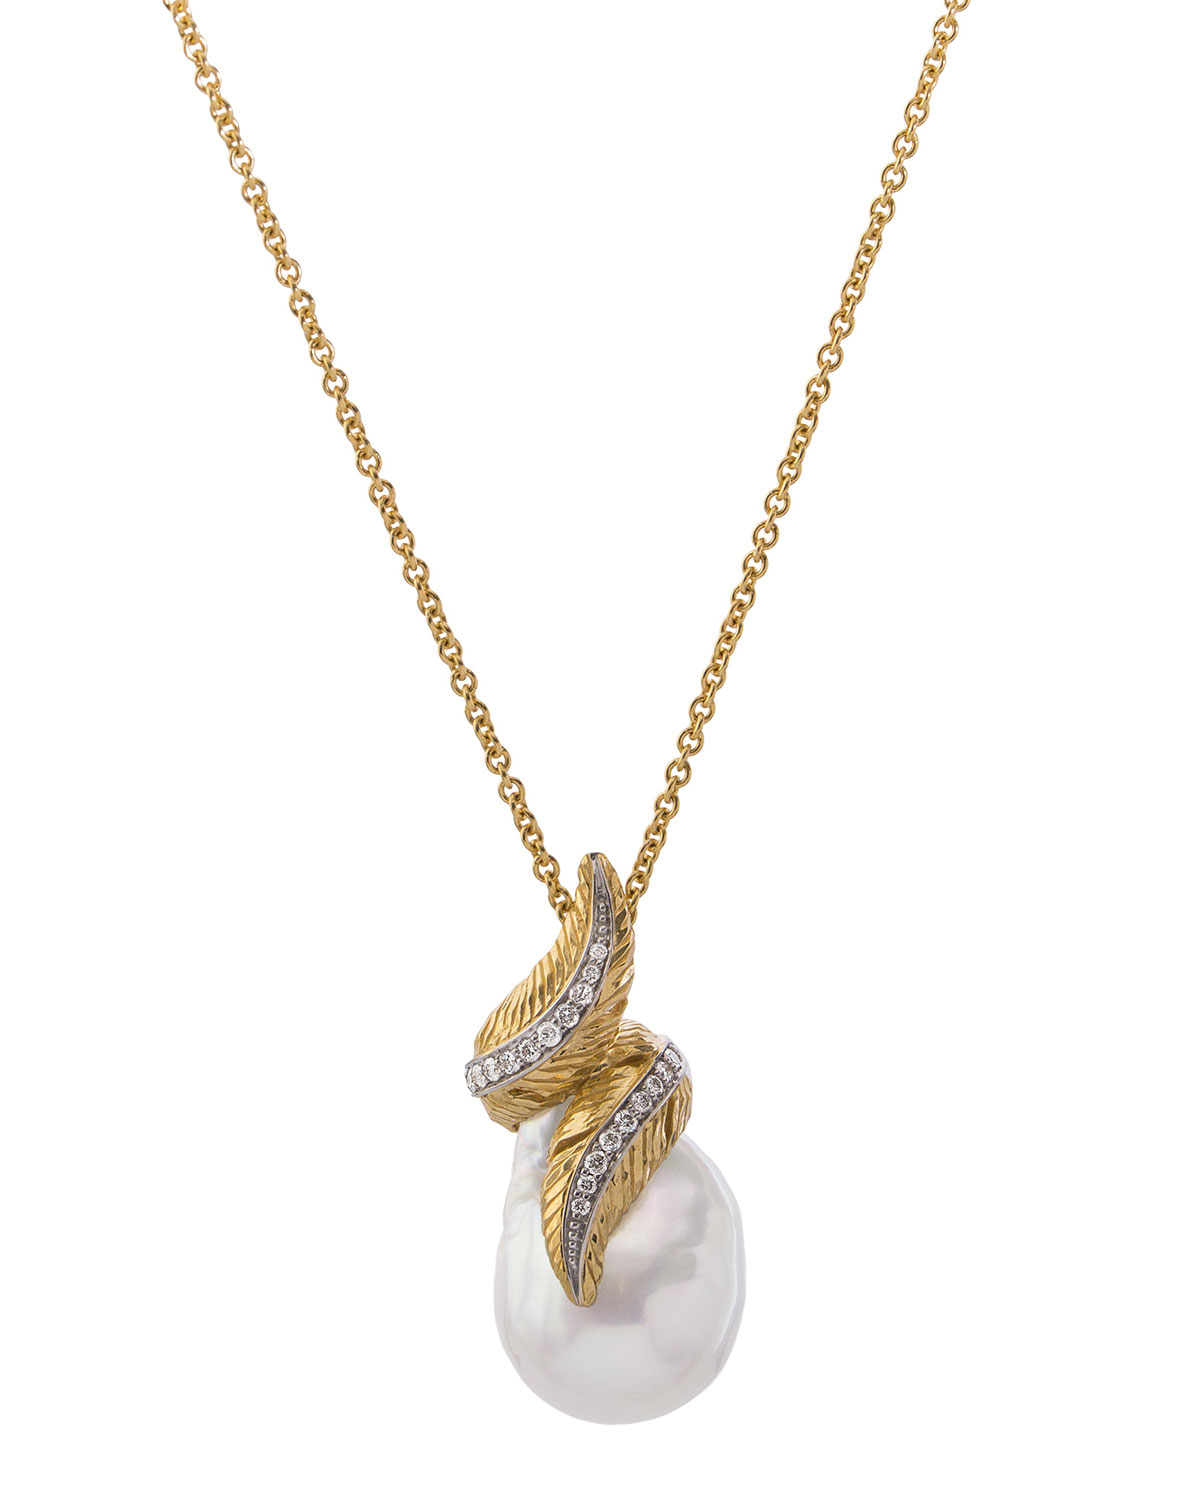 Michael Aram 18k Feather Wrap Necklace w/ Pearl & Diamonds